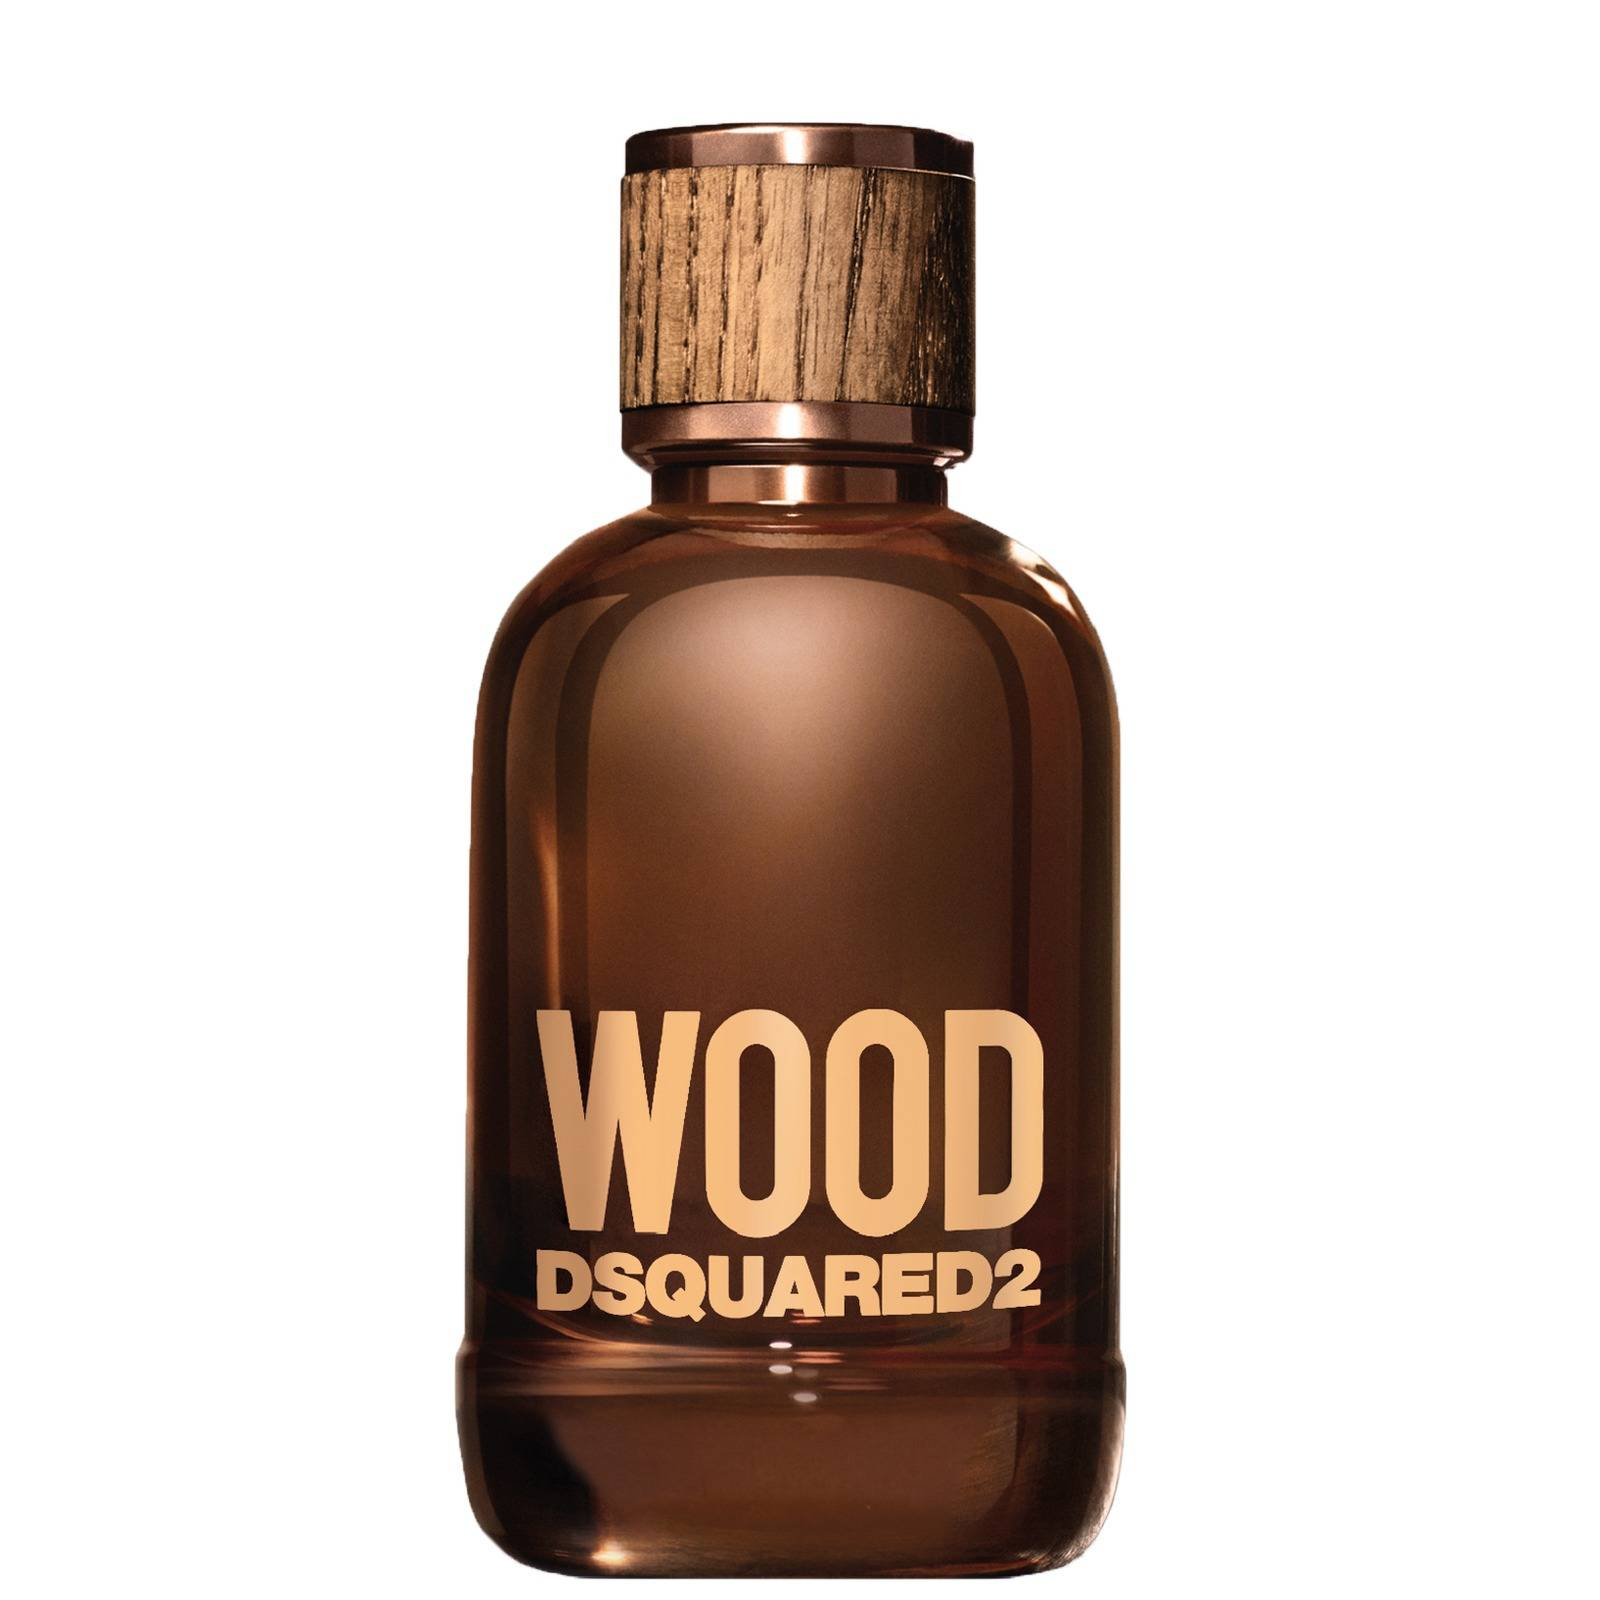 Dsquared2 Wood Pour Homme 100ml Eau de Toilette Spray